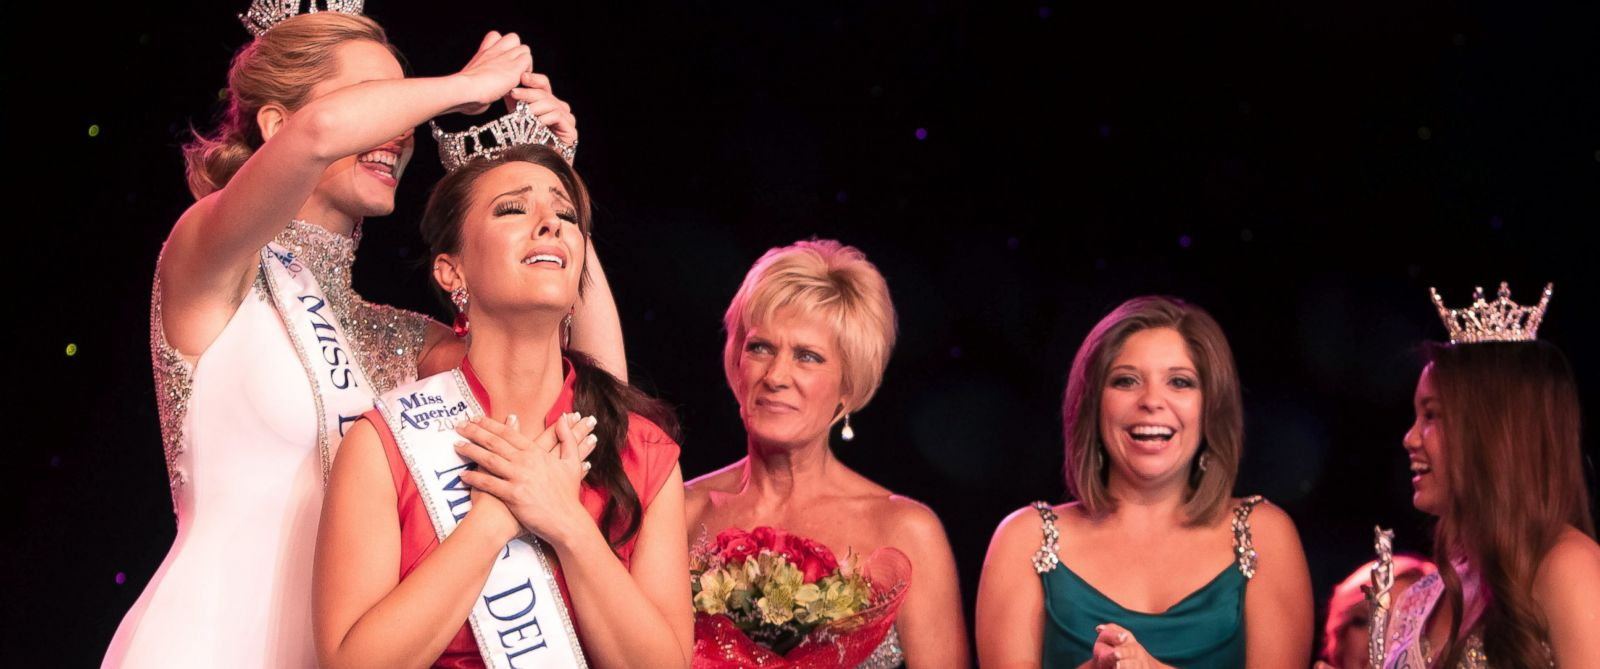 PHOTO: Amanda Longacre is crowned Miss Delaware 2014 in the Rollins Center of Dover Downs Hotel & Casino in Dover, Delaware on June 14, 2014.